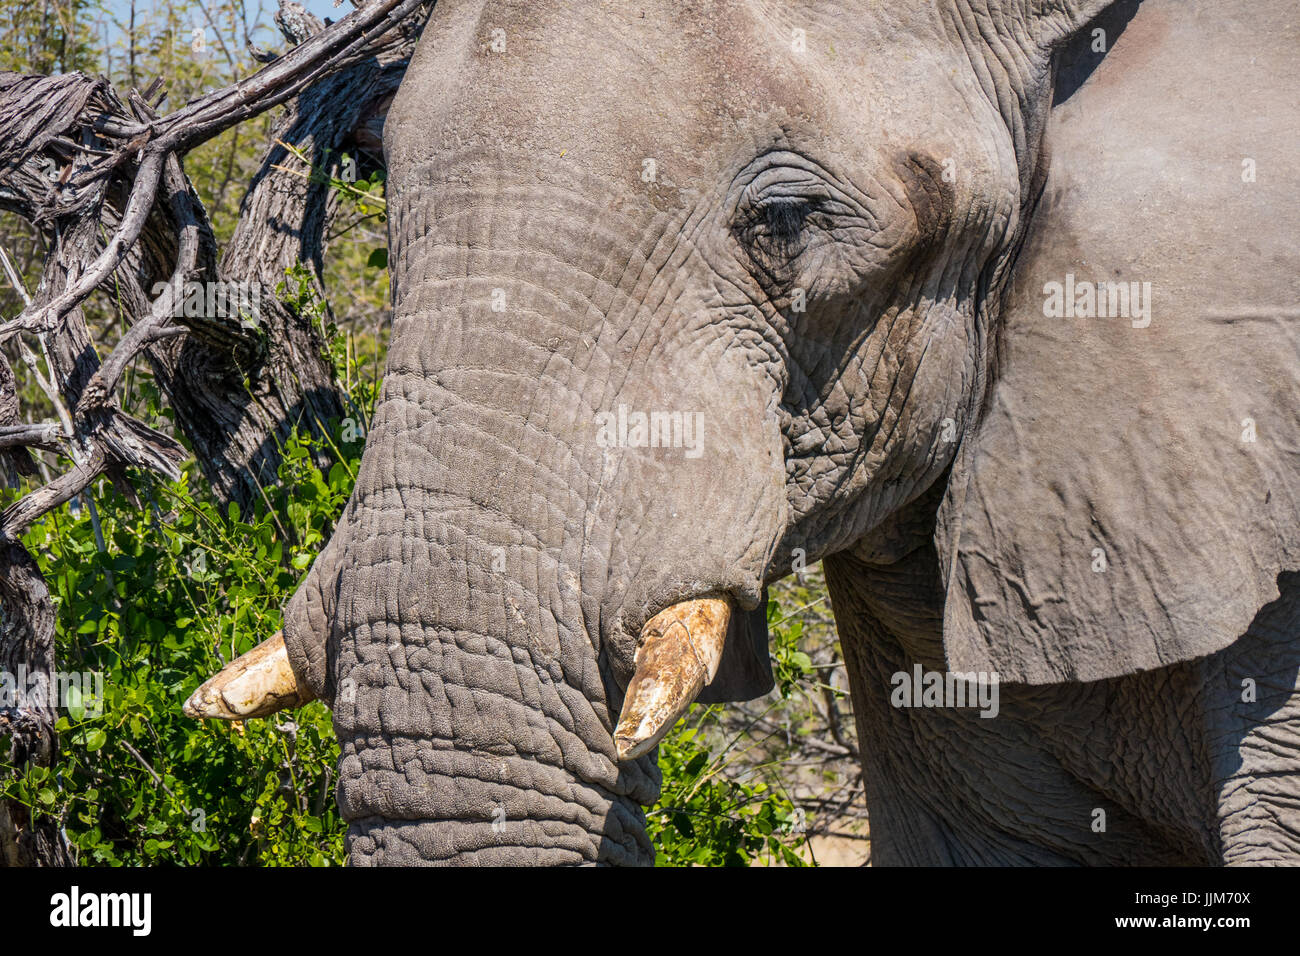 Elephant in Etosha National Park, Namibia, Africa - Stock Image